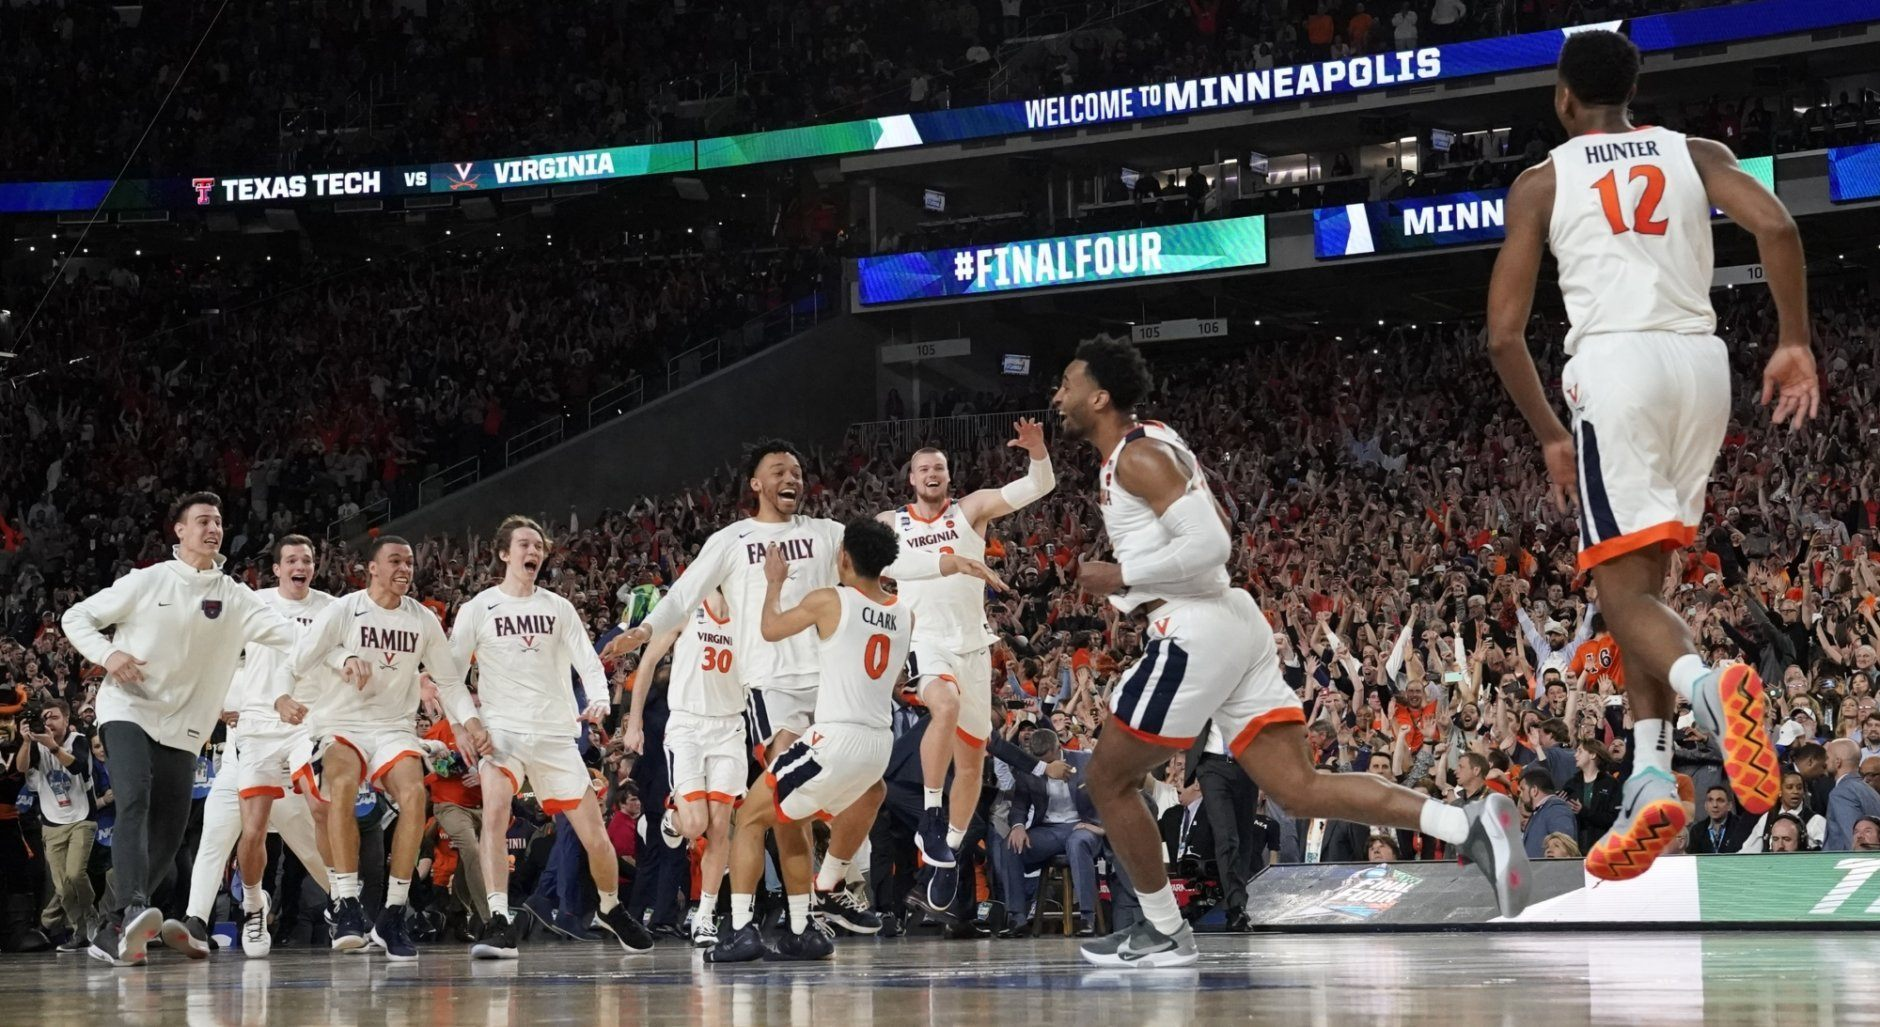 <p><strong>3. Virginia finds redemption</strong></p> <p>If you were going to write the story of redemption for the first 1 seed to lose to a 16 seed, you'd play up the drama for maximum effect. They'd have to trail the opening round 16 seed again, by double digits, to start. They'd have to trail every game, to need a miracle to force overtime in one game, then another to win the next. They'd need heart-stopping drama at every turn, making you think that redemption is too good to be true. And then, they'd have to cap it all off with not just a Final Four, but the first national title in program history (in overtime, naturally). Good thing Virginia stuck to the script.</p>